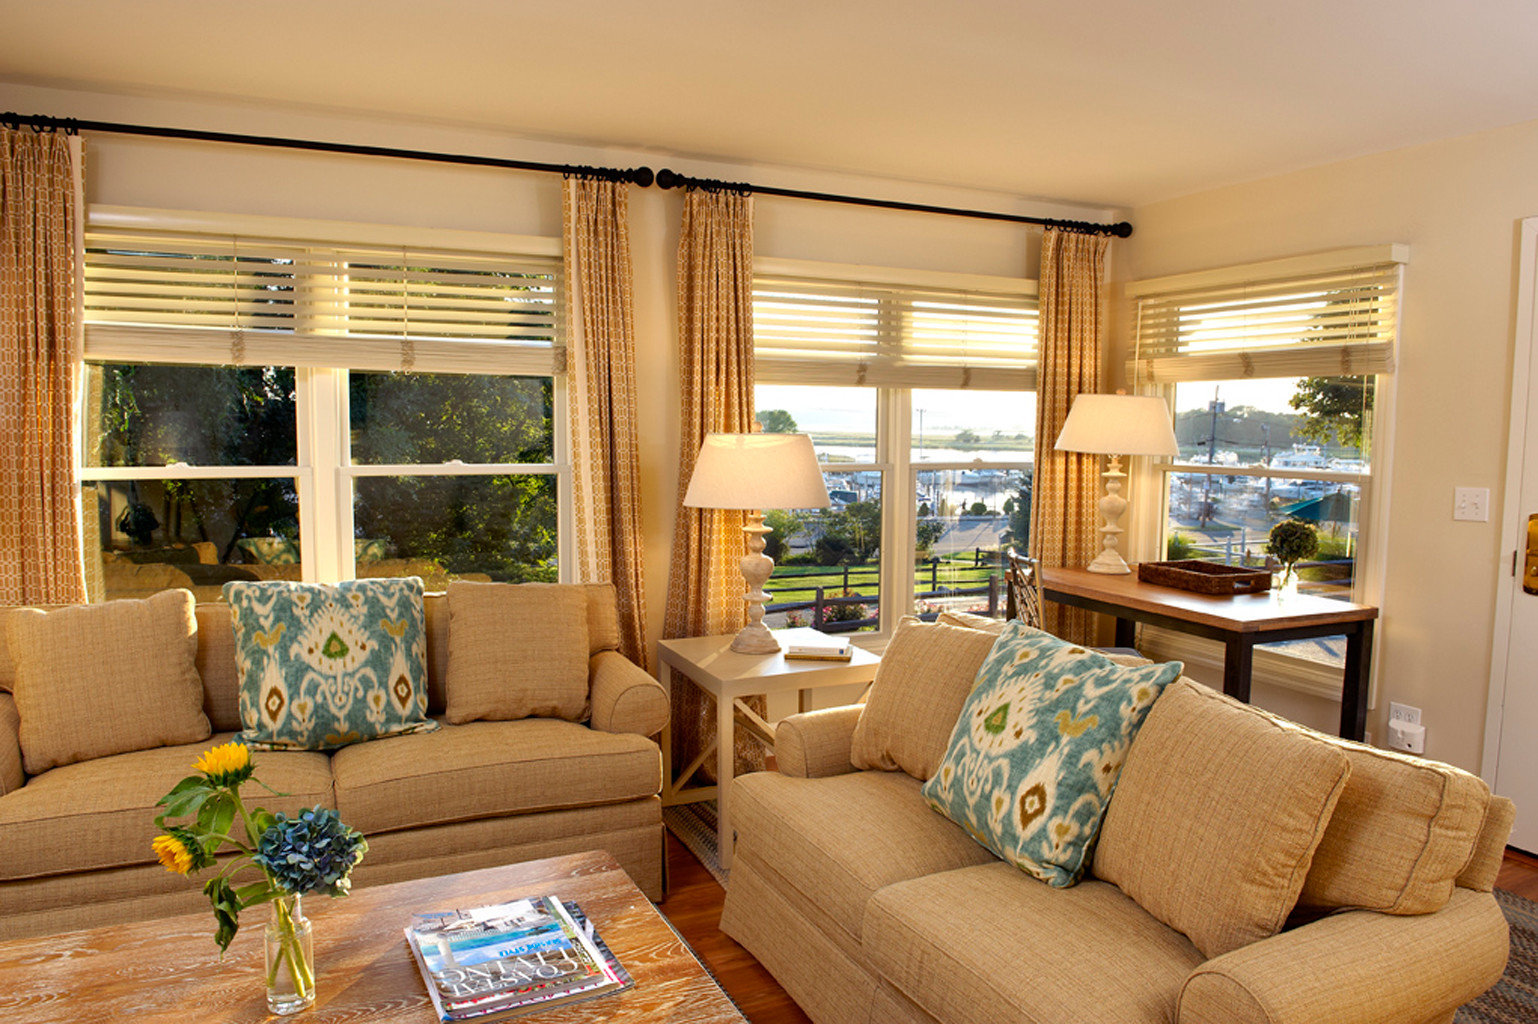 Boat Country Inn Scenic views Suite Waterfront sofa living room property condominium home cottage nice seat flat